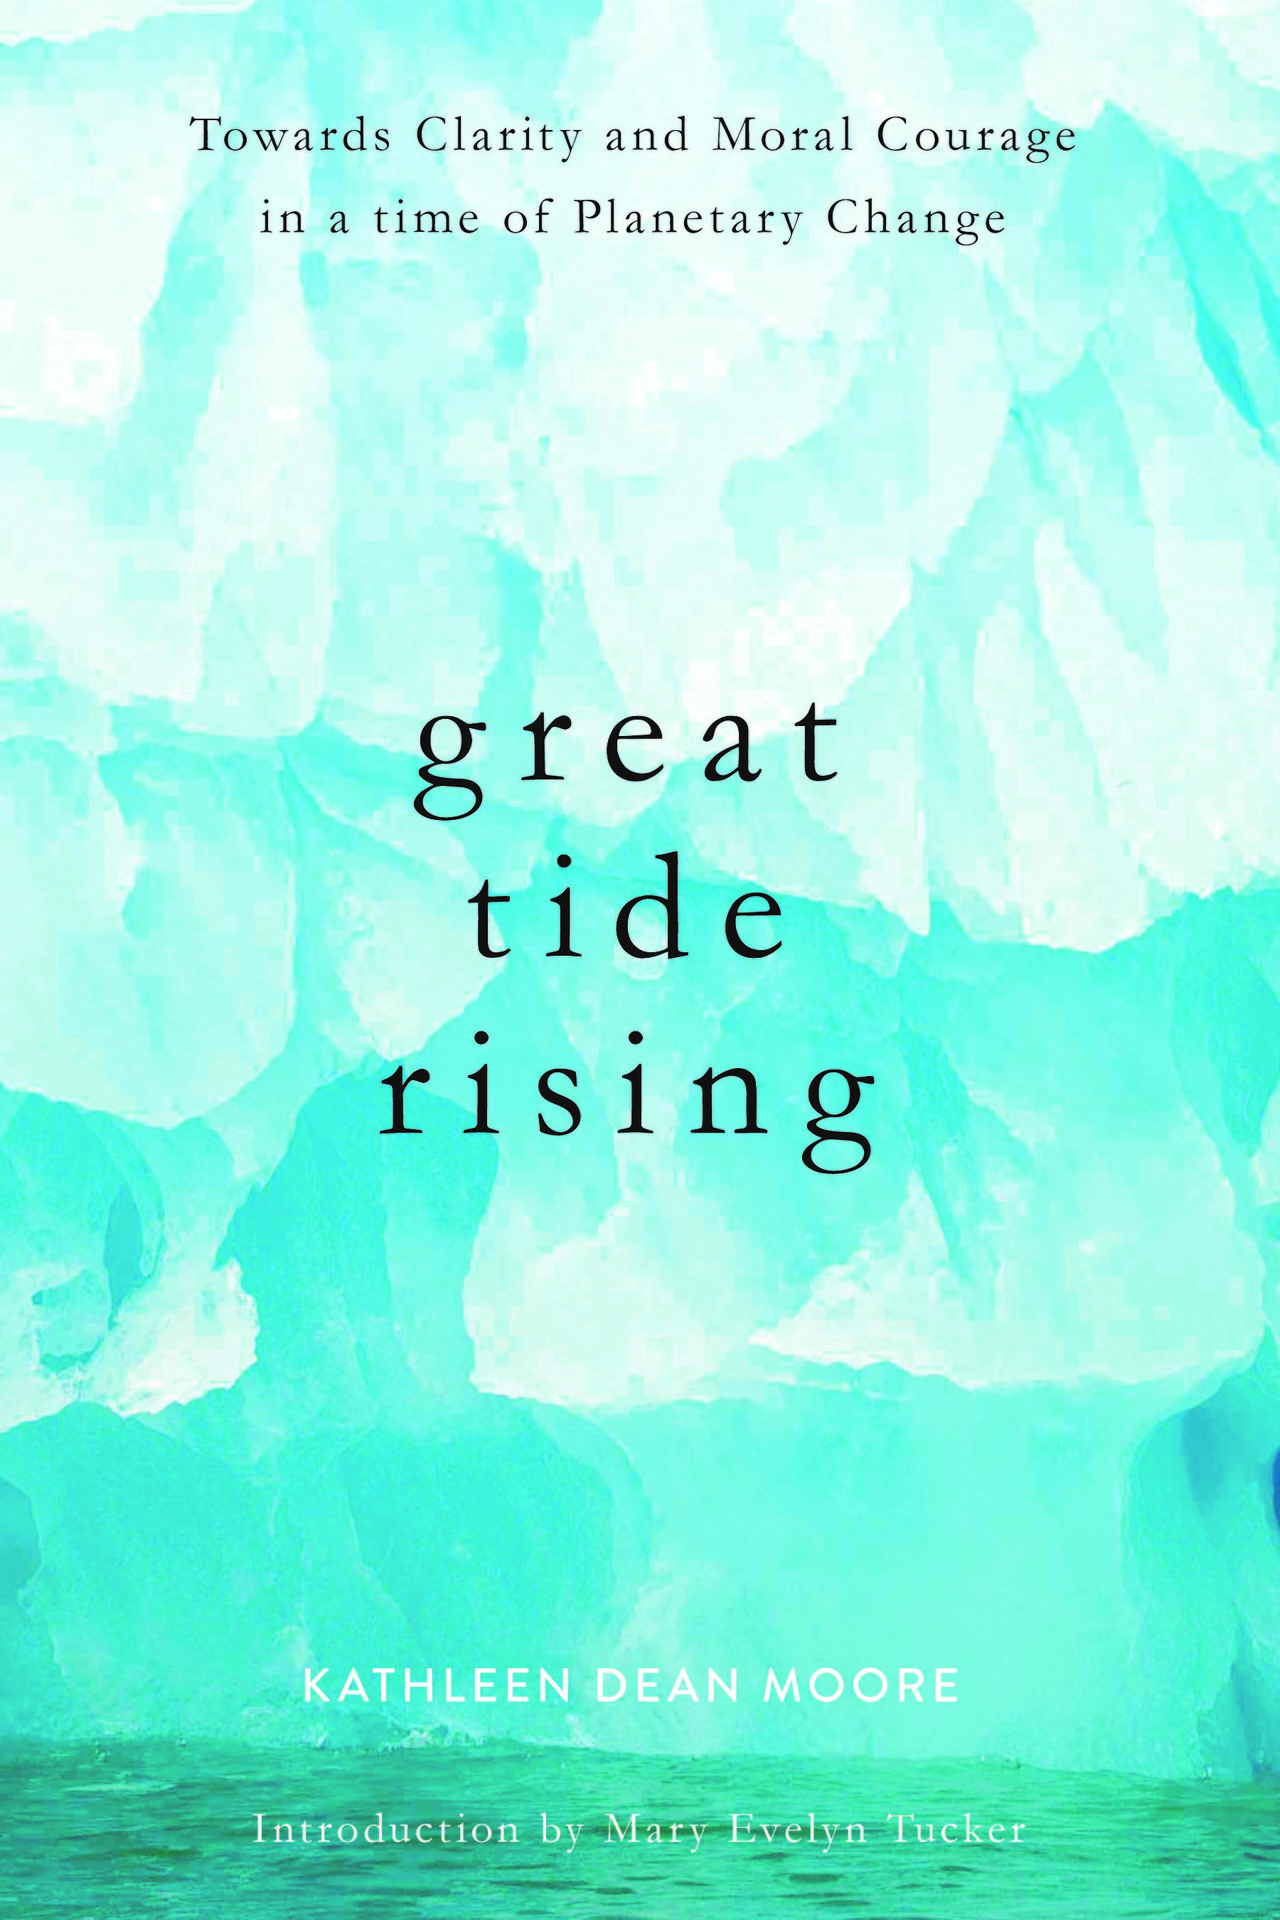 Great tide rising cover